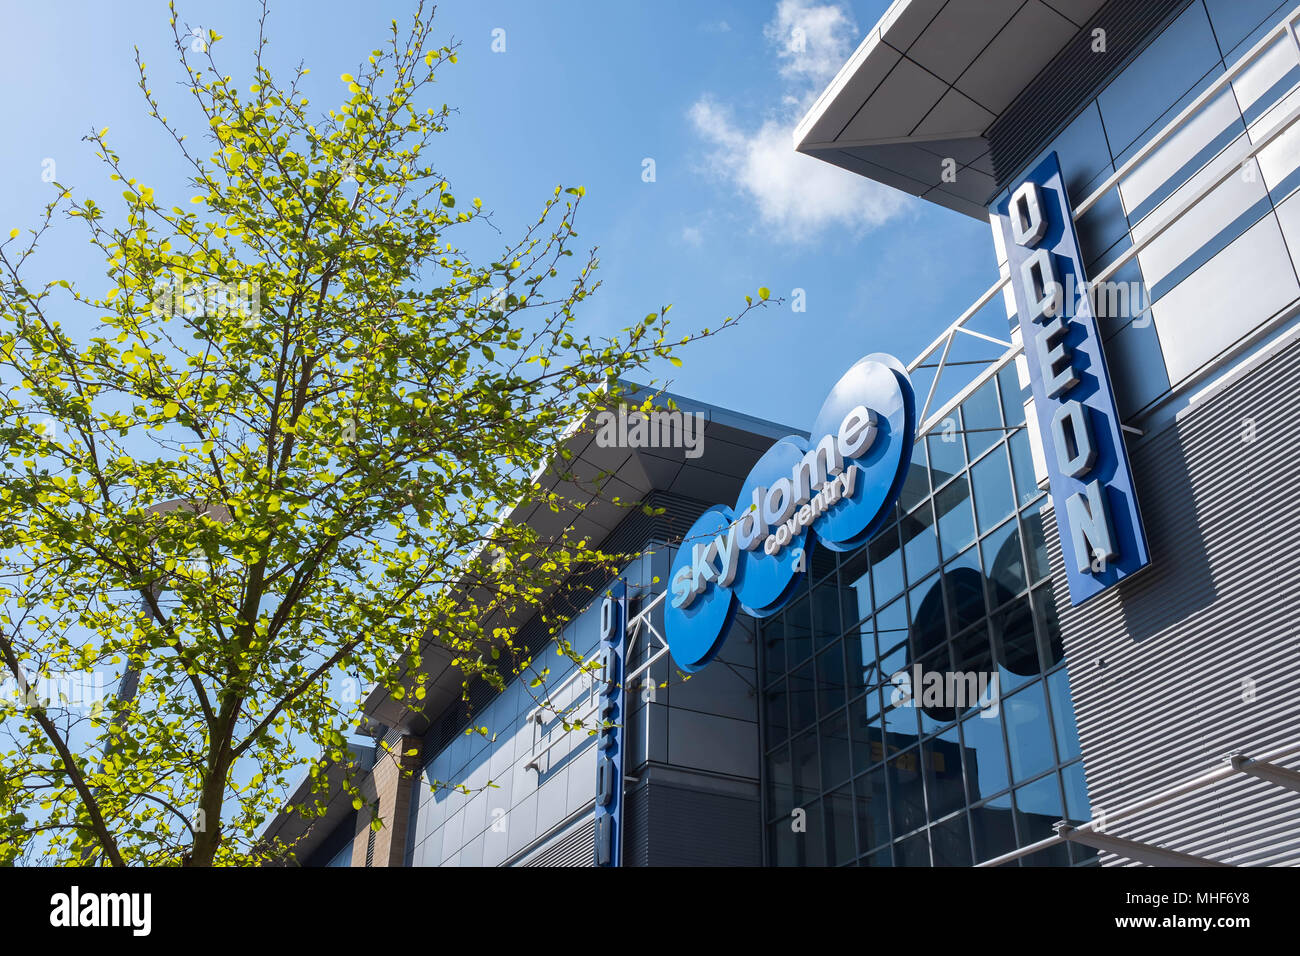 Skydome, Coventry city centre - Stock Image